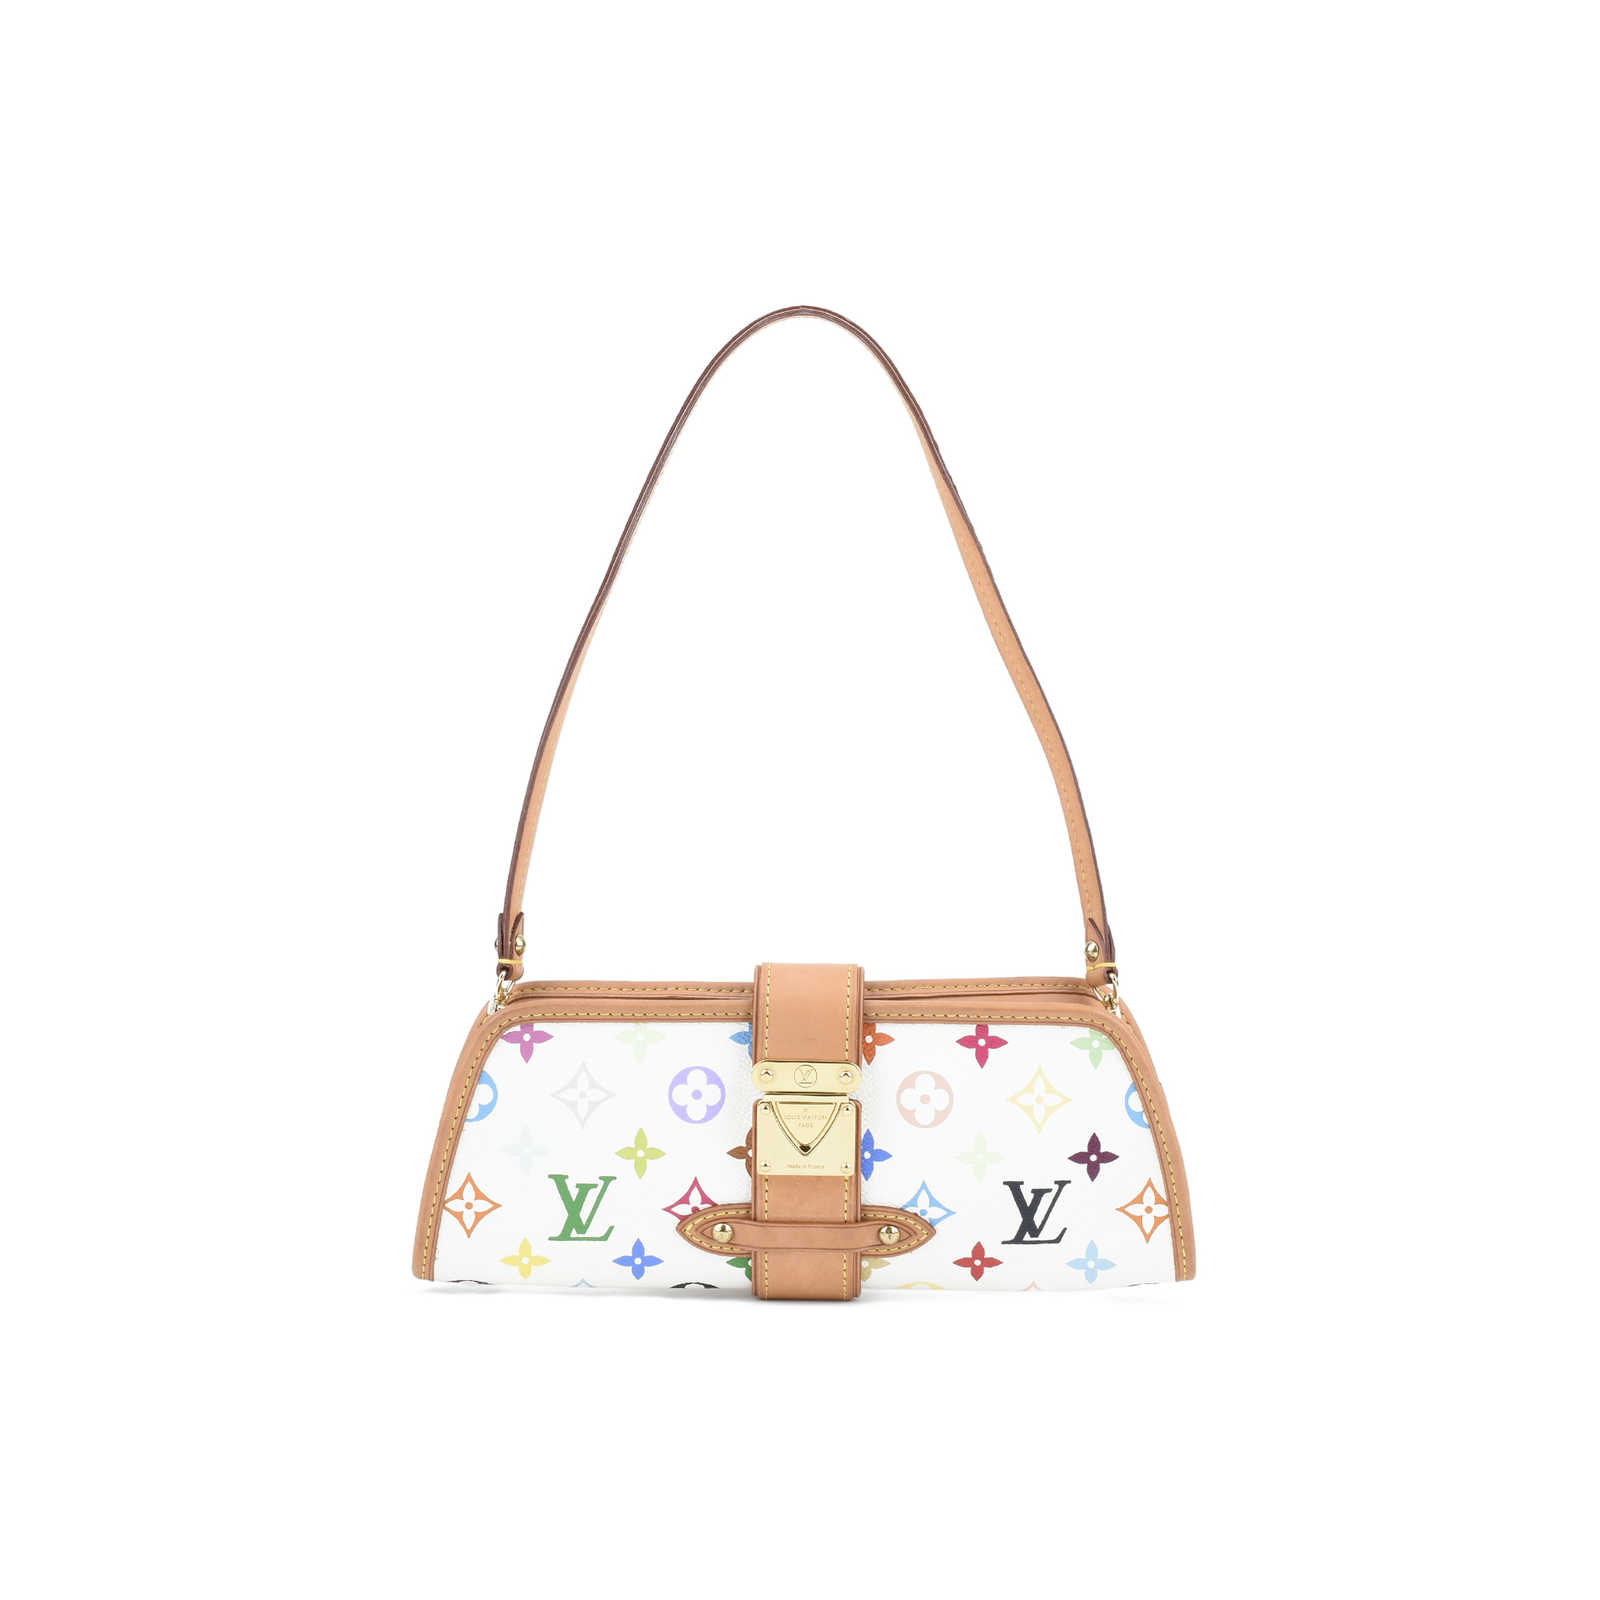 Tap to expand · Authentic Second Hand Louis Vuitton Shirley Monogram Bag  (PSS-420-00018) ... 64cce8a3f6da6